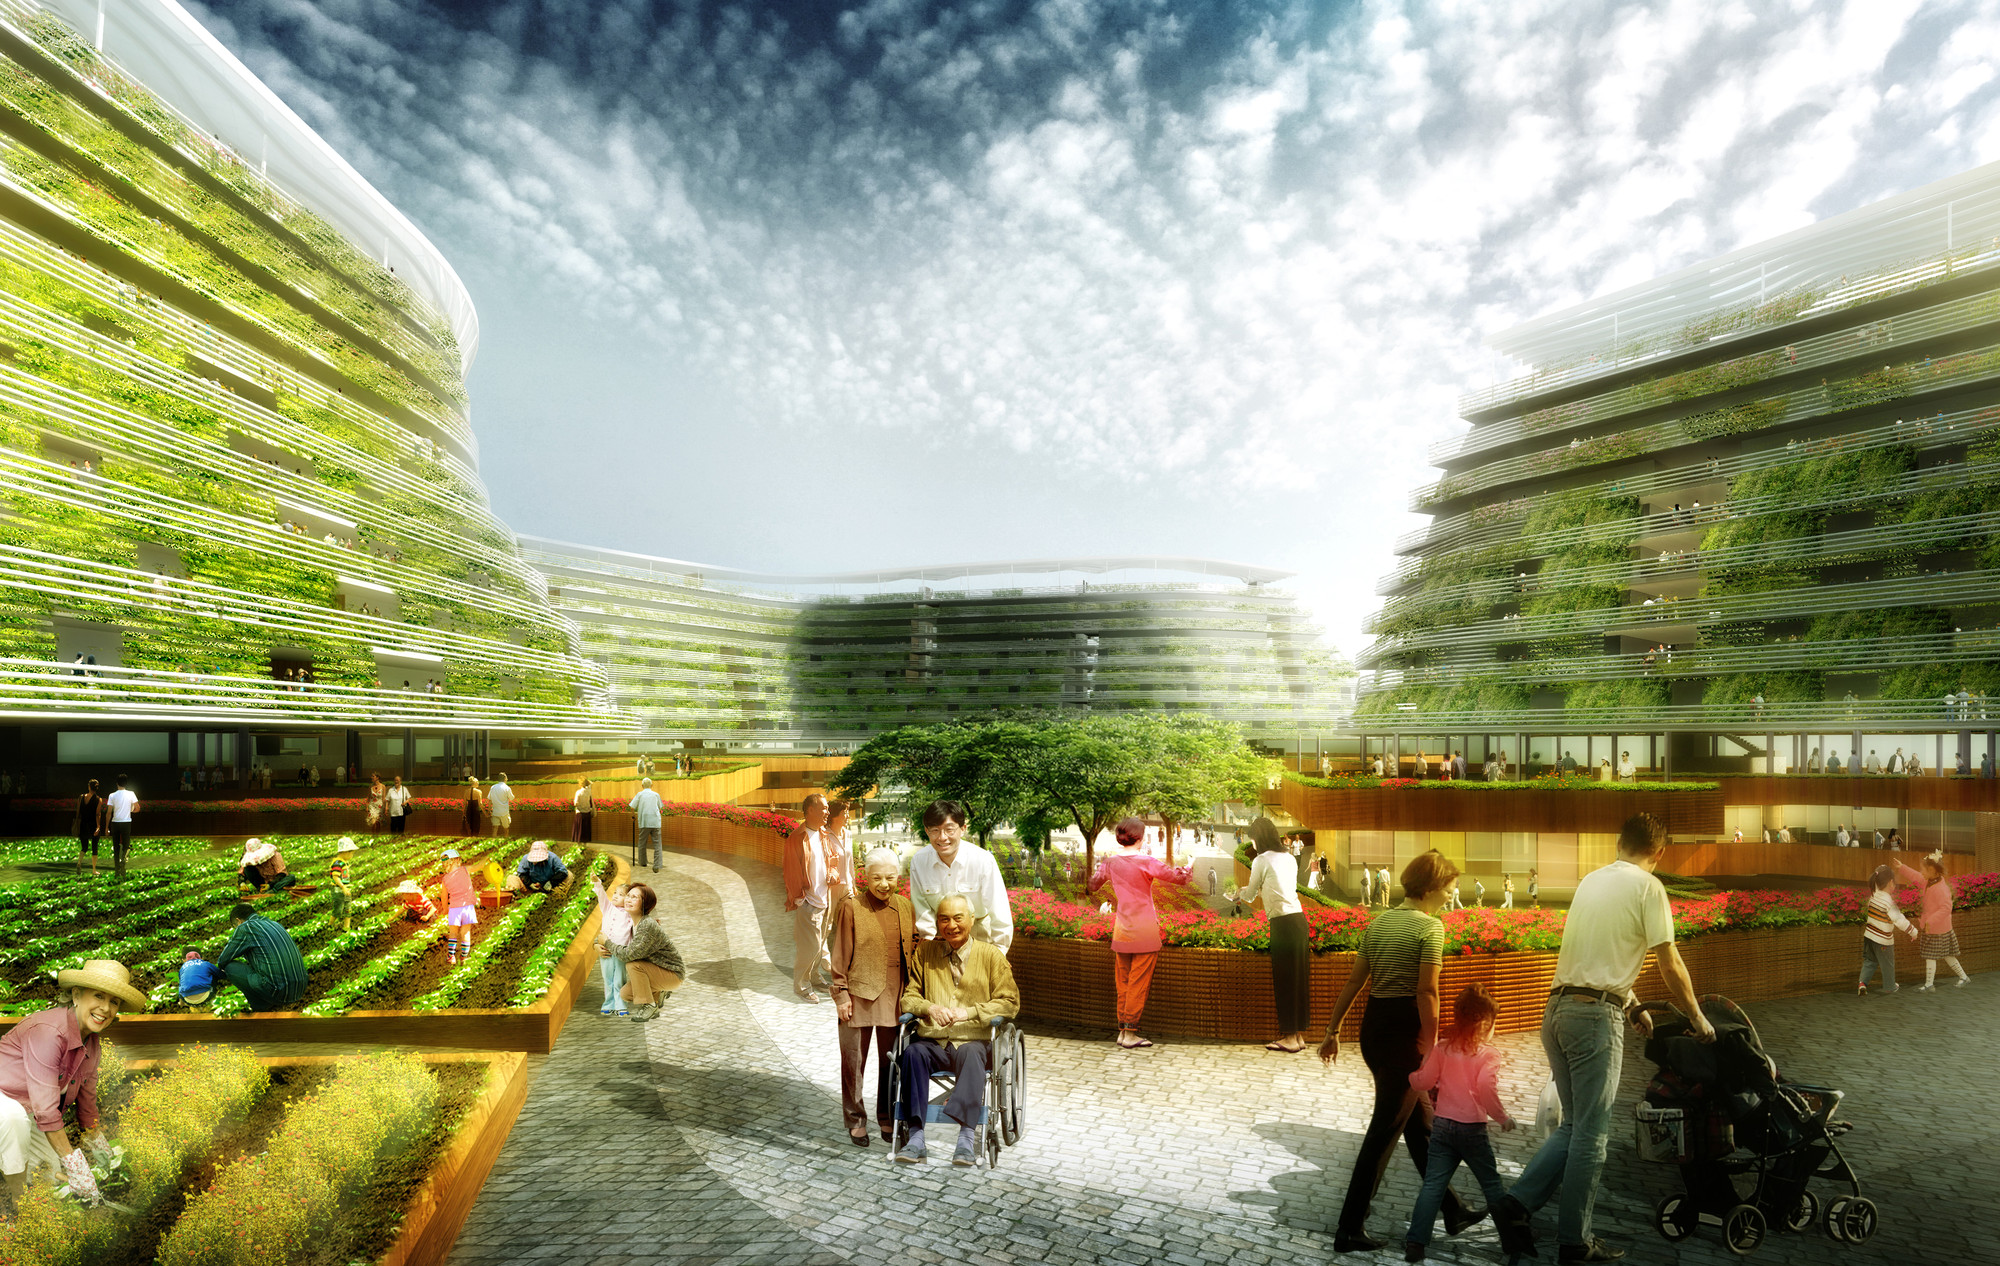 SPARK Proposes Vertical Farming Hybrid to House Singapore's Aging Population, Deck Level. Image © SPARK